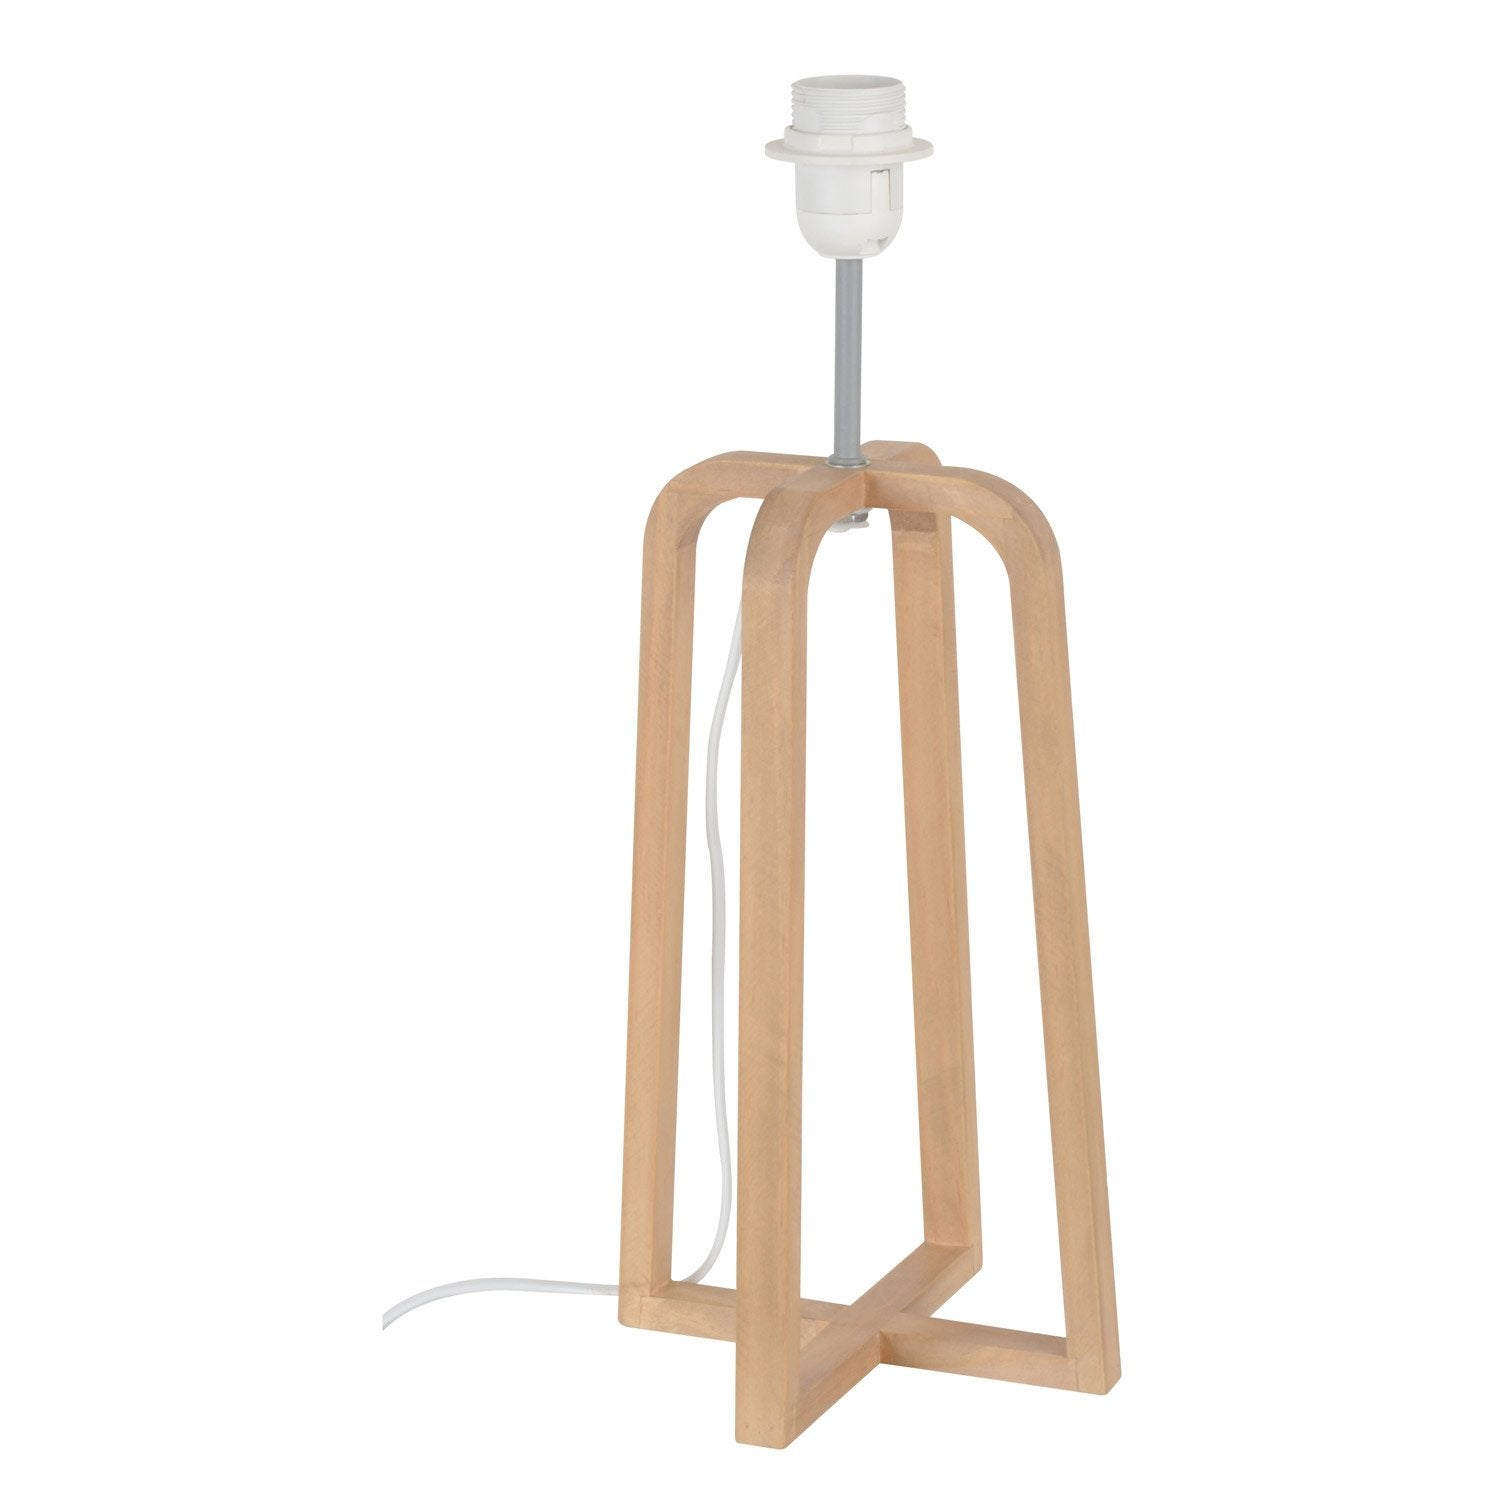 Pied de lampe scandinave bois naturel 46 cm leroy merlin for Lampe piscine bois